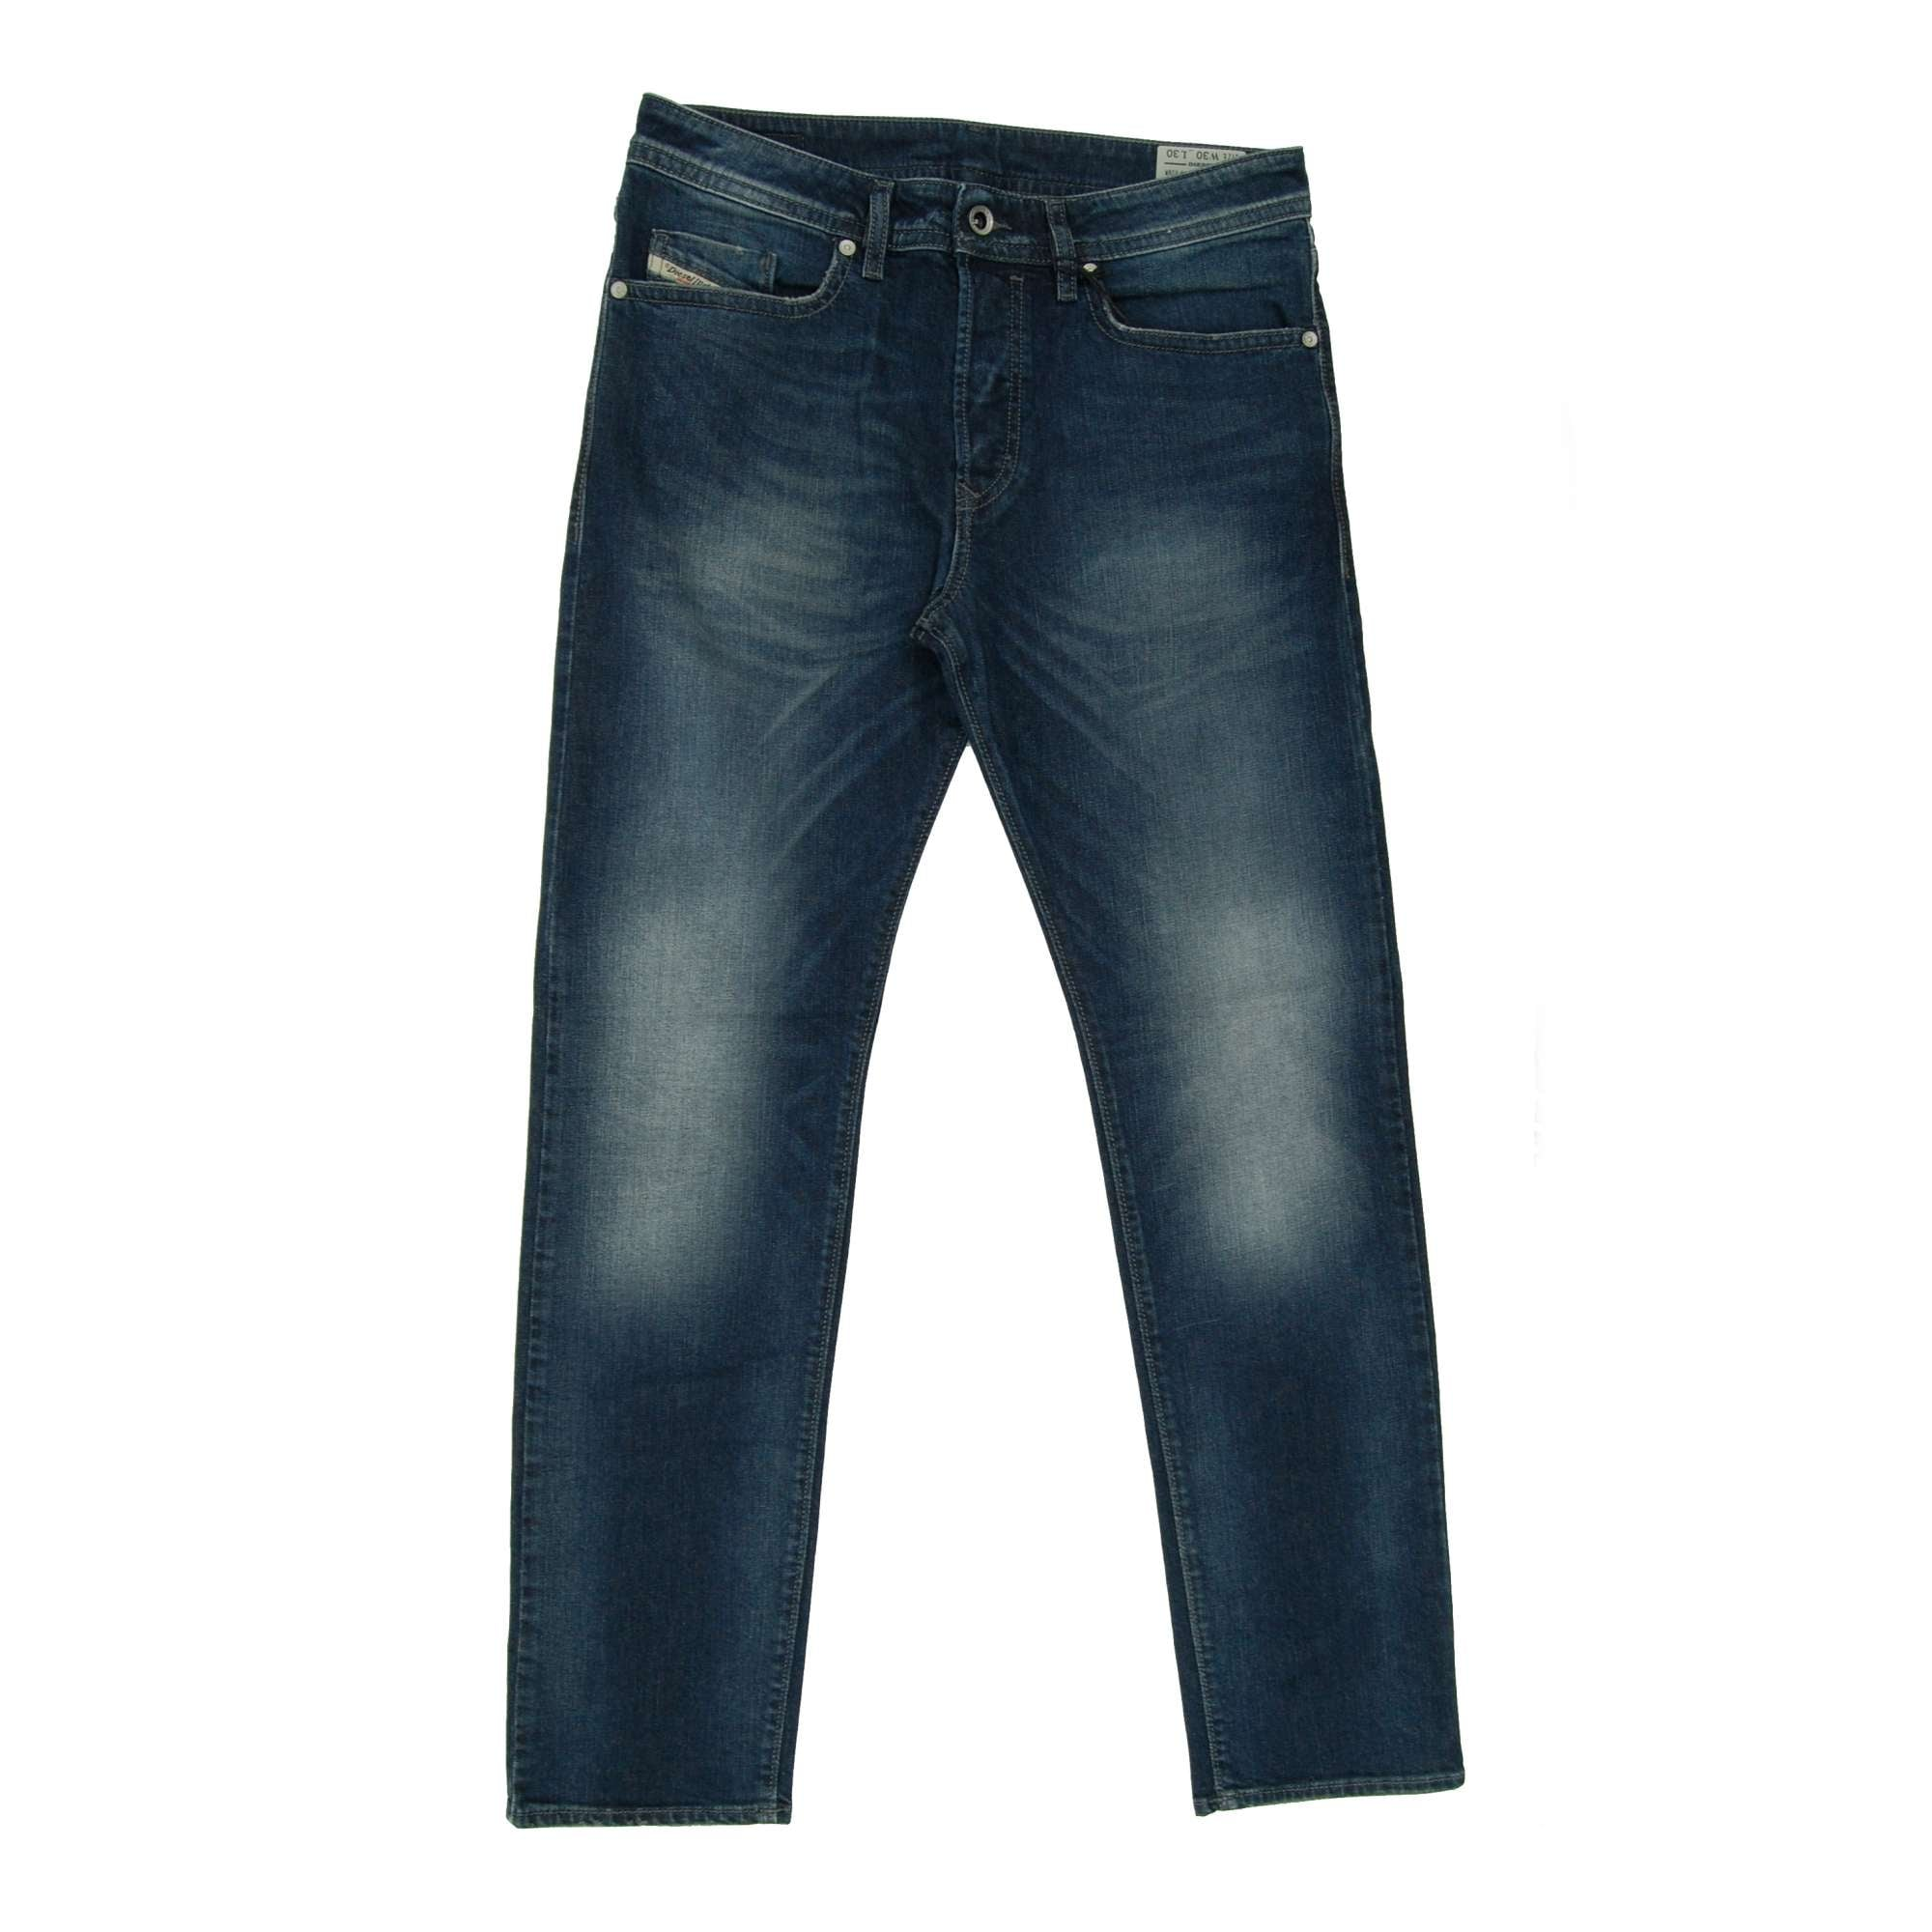 diesel buster jeans 853r stretch mens jeans from attic clothing uk. Black Bedroom Furniture Sets. Home Design Ideas